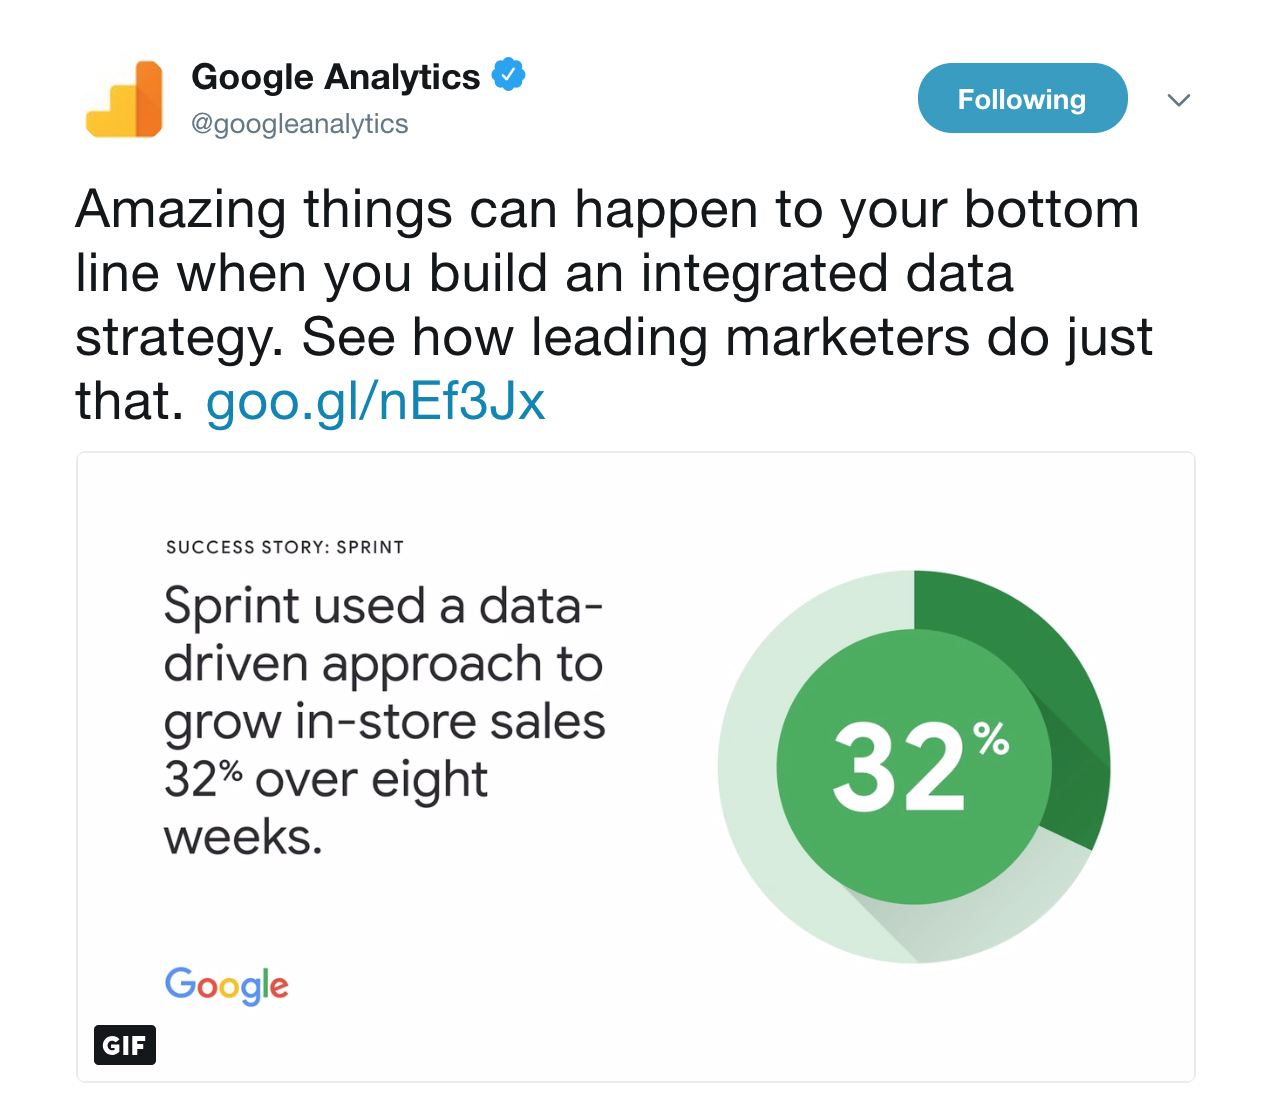 google-analytics-tweet-11.jpg